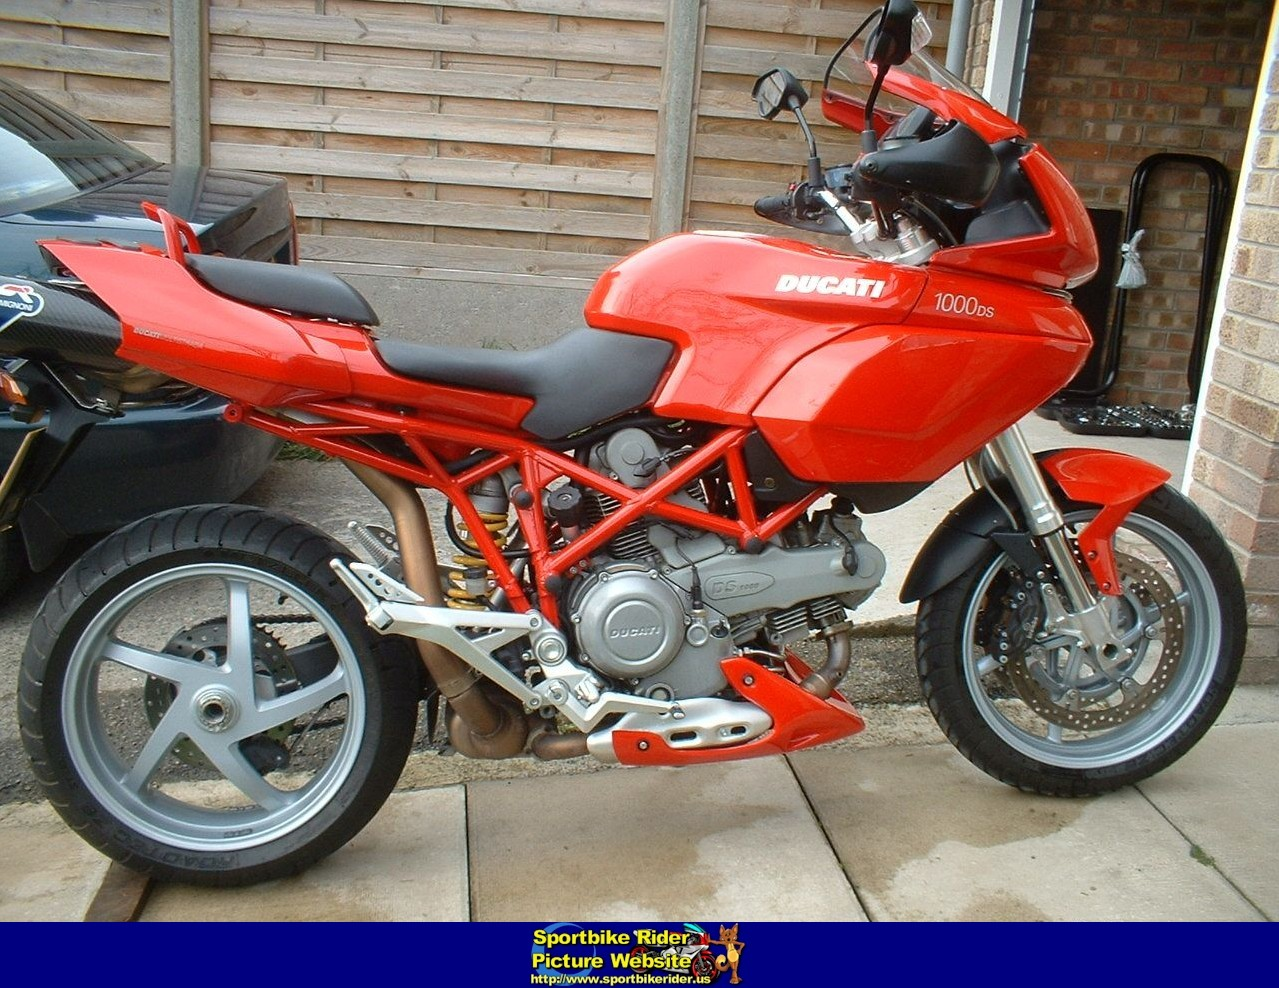 2003 ducati multistrada 1000 ds pics specs and information. Black Bedroom Furniture Sets. Home Design Ideas